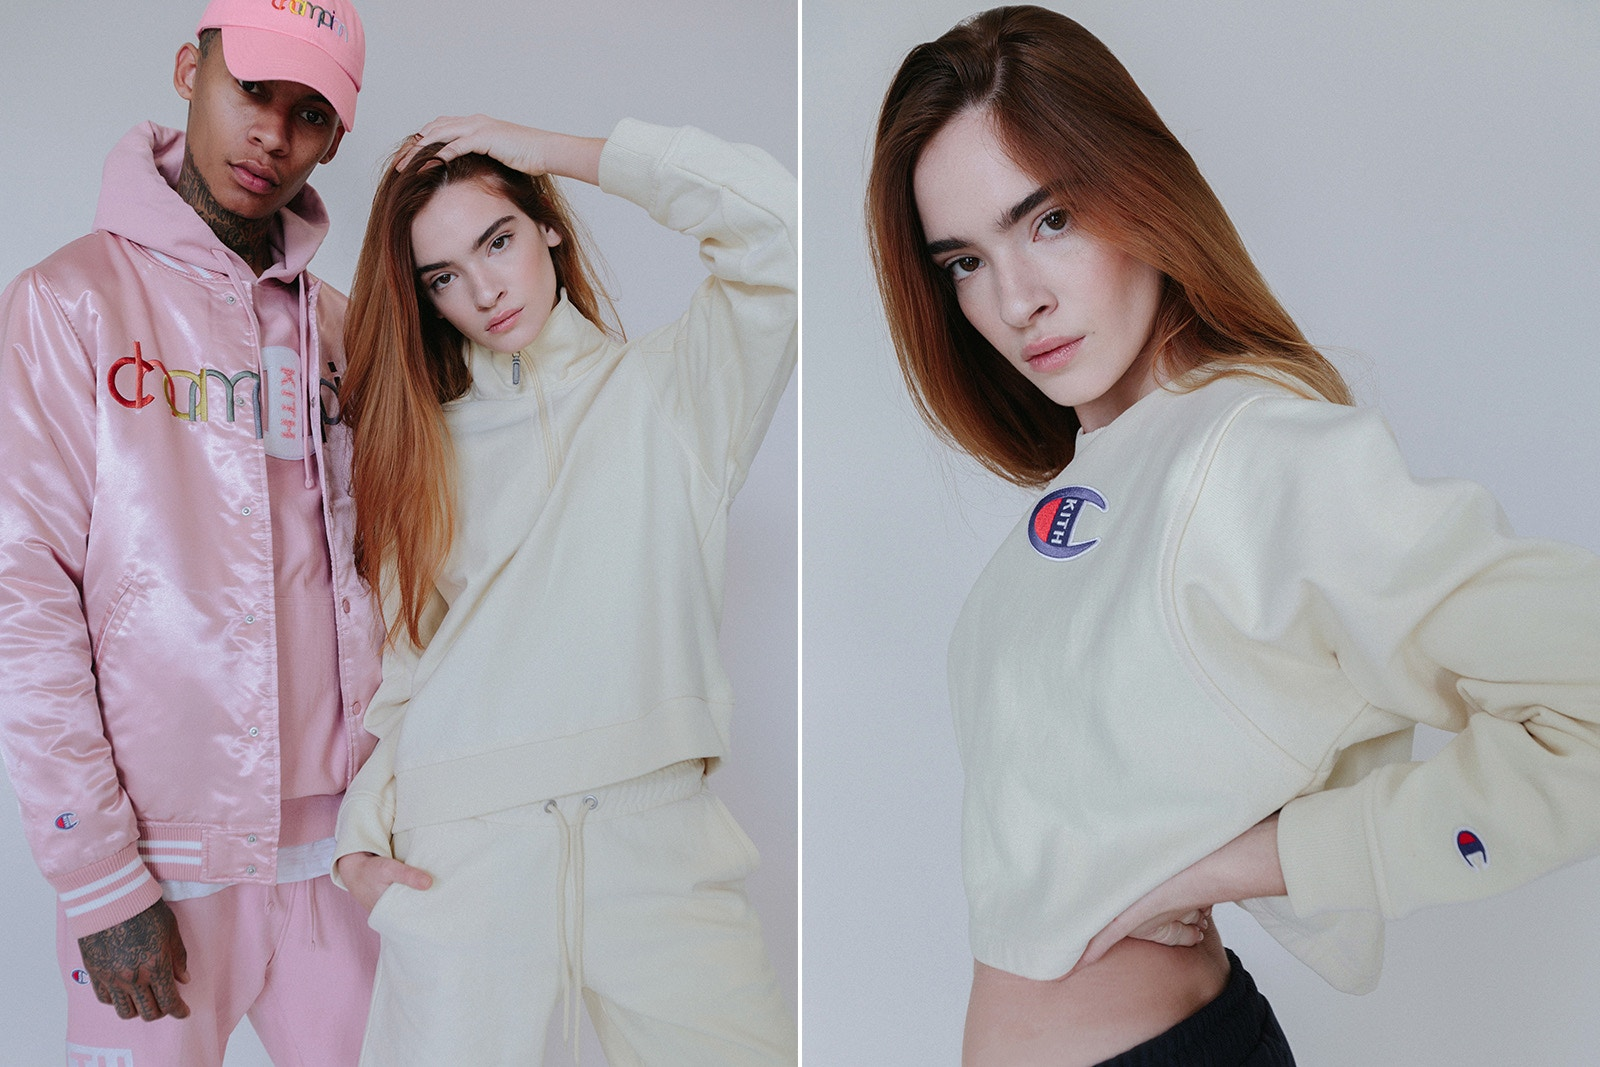 KITH rielabora il logo di Champion per una nuova capsule collection | Collater.al 12